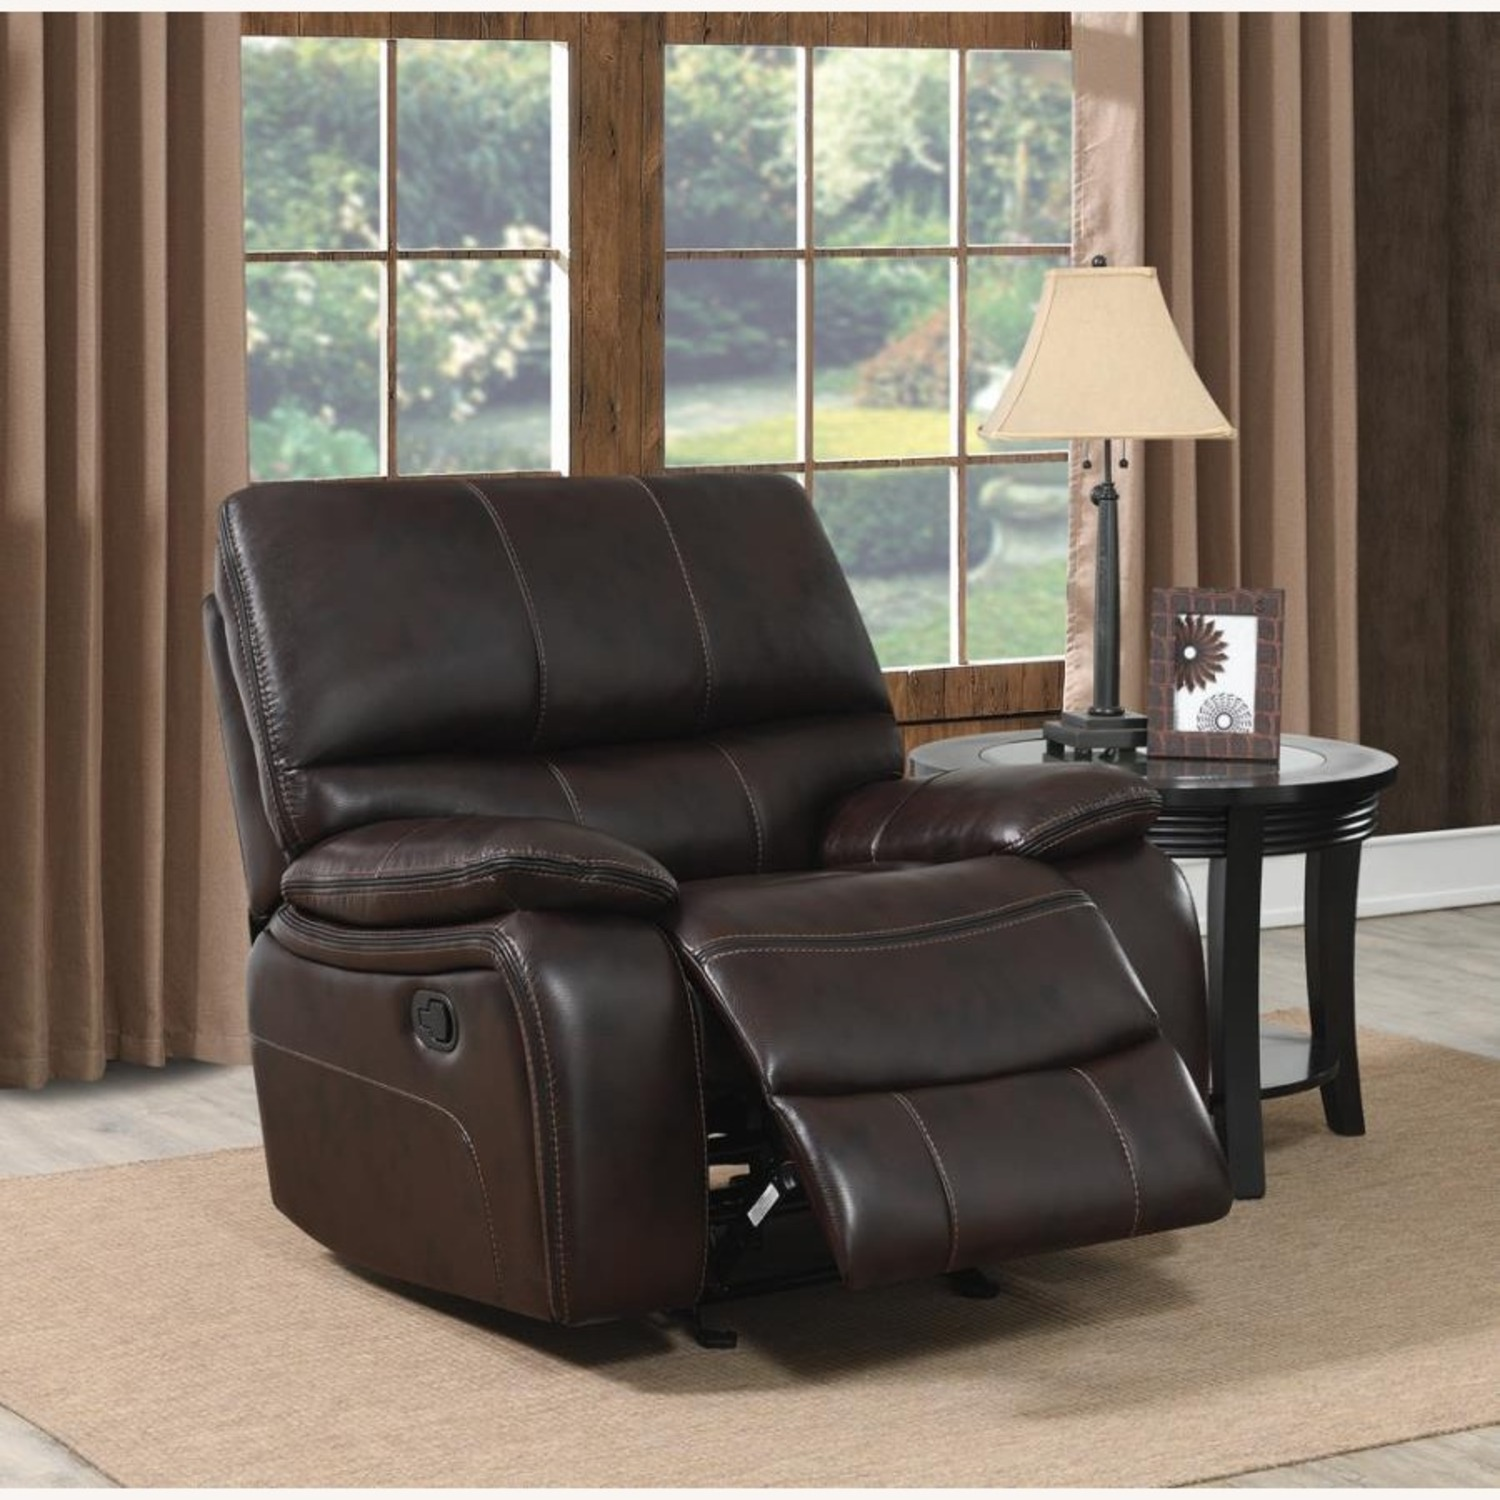 Glider Recliner W/ Scooped Seating In Dark Brown - image-2